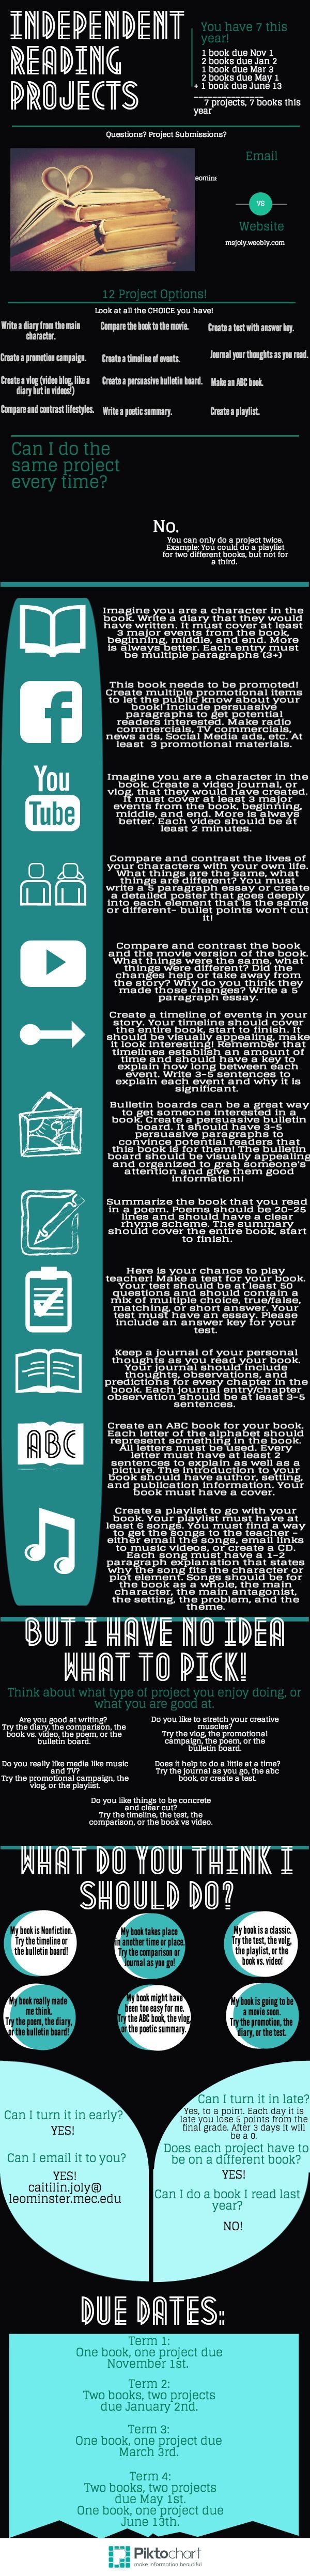 Trying a fun new way to get info to my kids! Independent Reading Projects | @Piktochart Infographic: